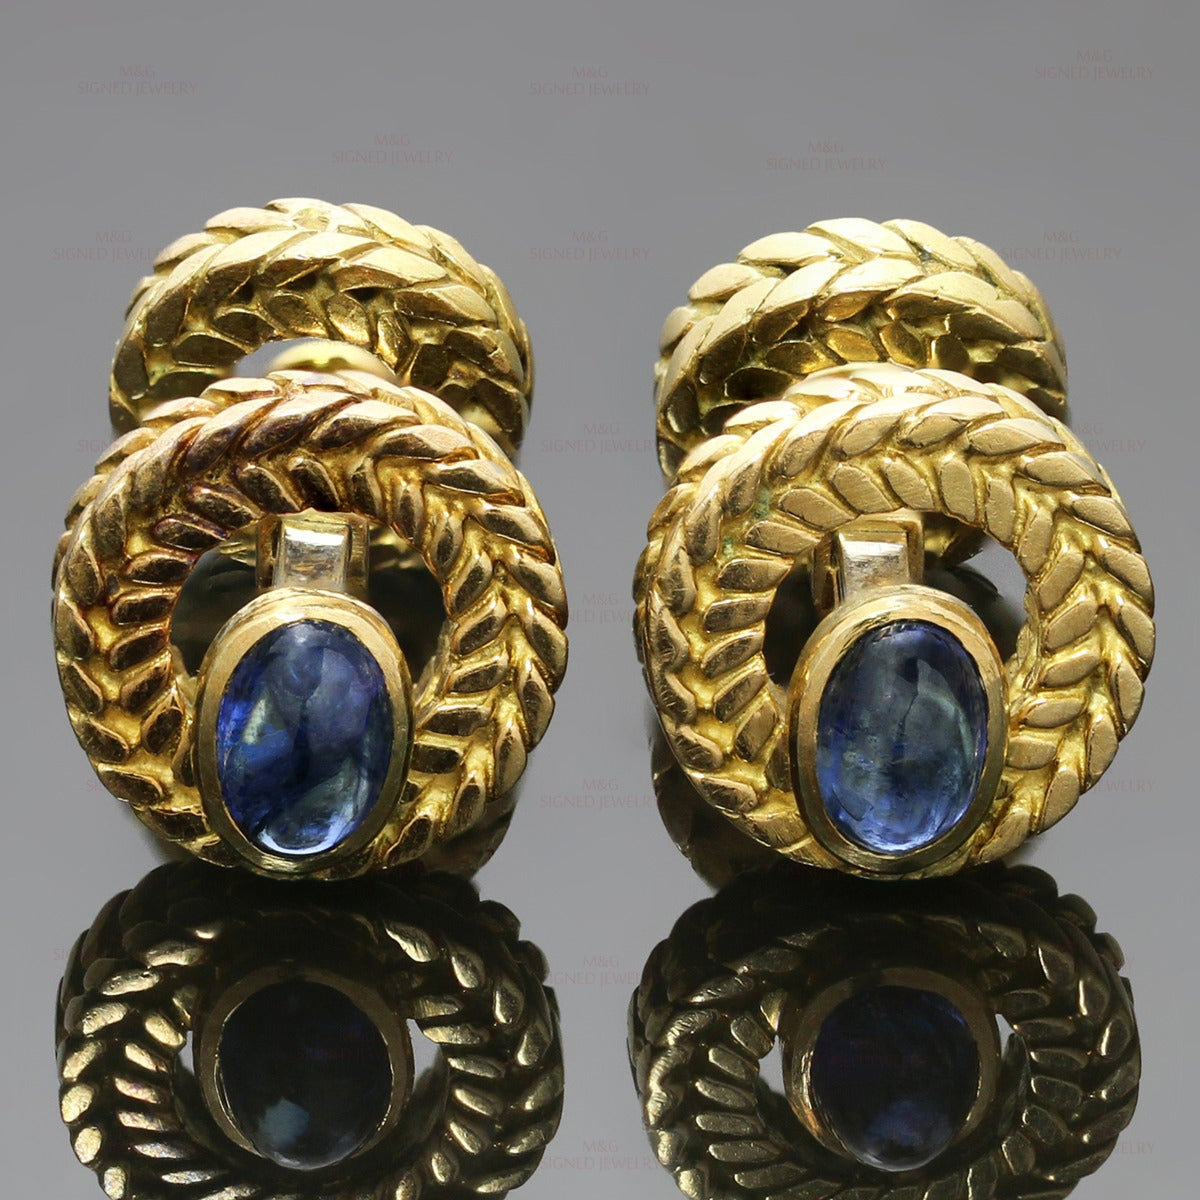 These classic Van Cleef & Arpels cufflinks are crafted in 18k yellow gold and set with 2 oval and 2 round blue cabochon sapphires of an estimated 3.0 carats. Made in France circa 1960s. Measurements: 0.55